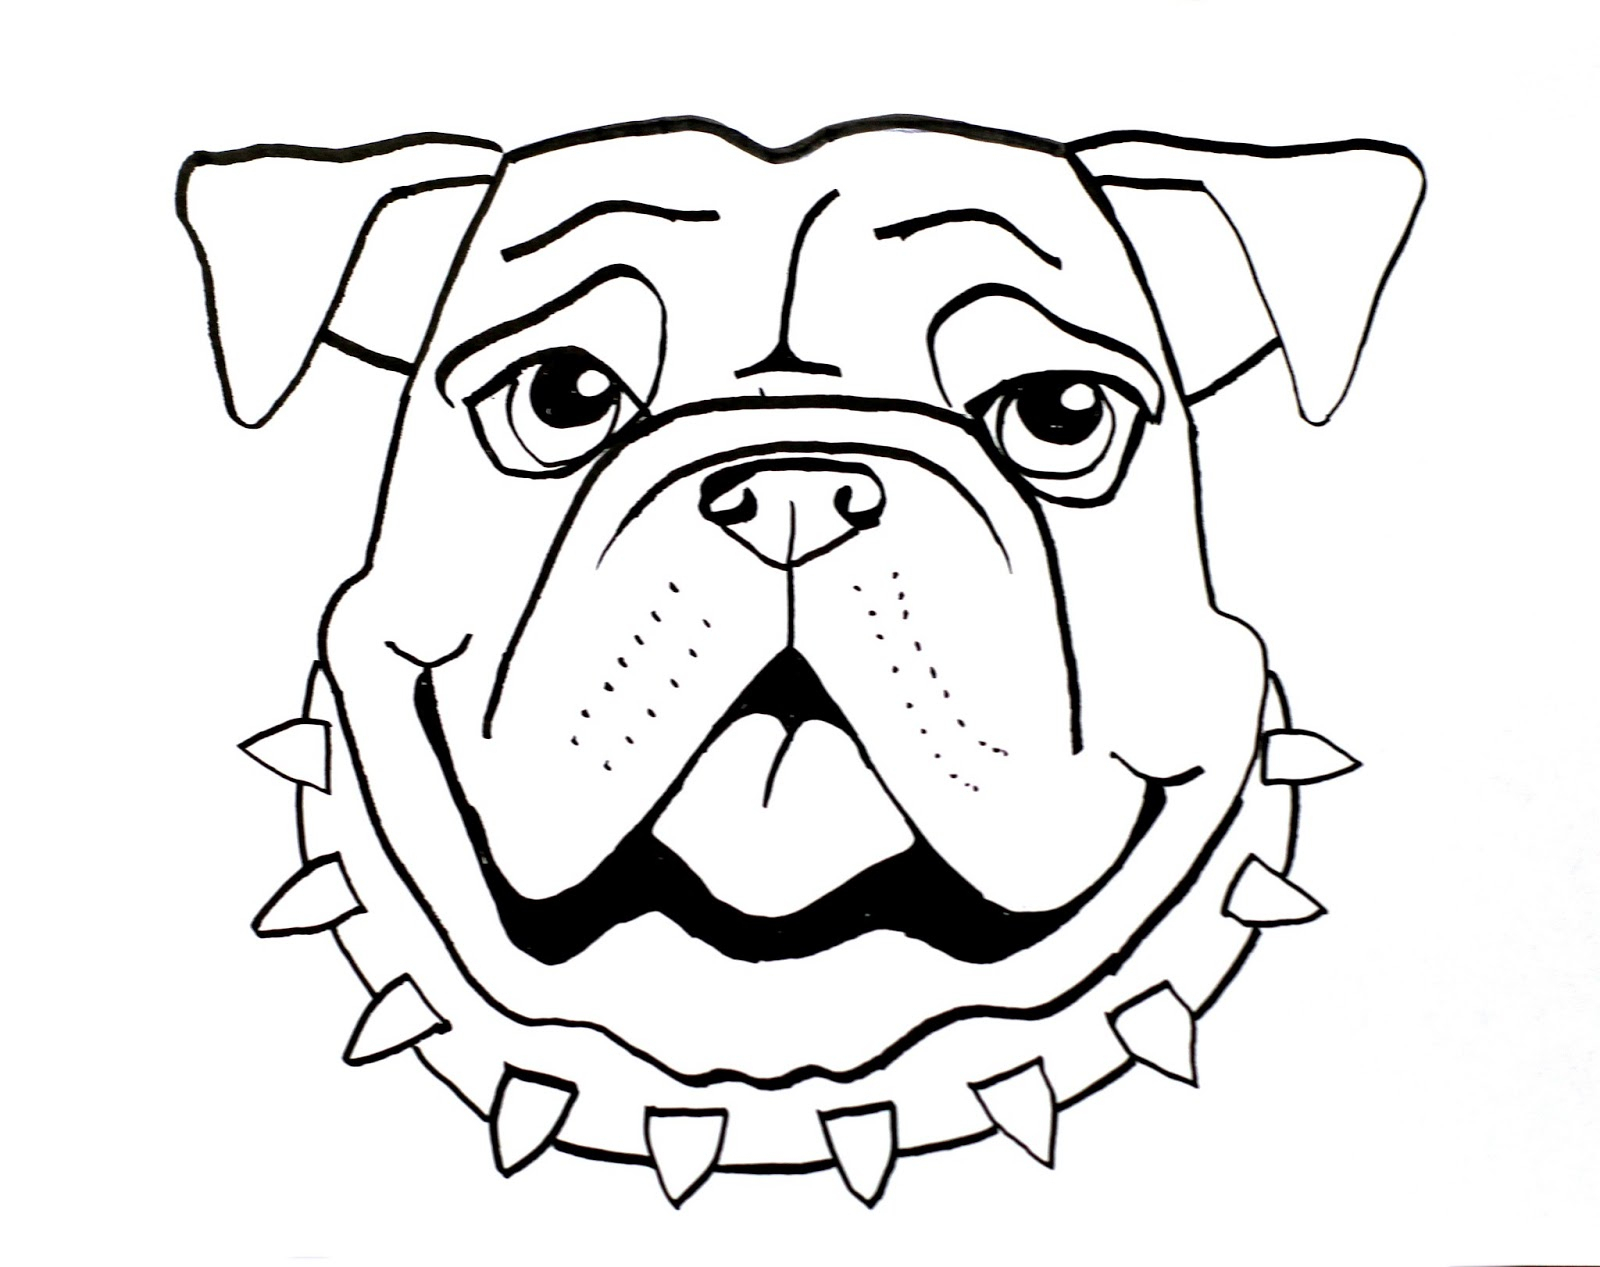 1600x1267 Drawing Of A Bulldog Coloring Pages Delightful How To Draw